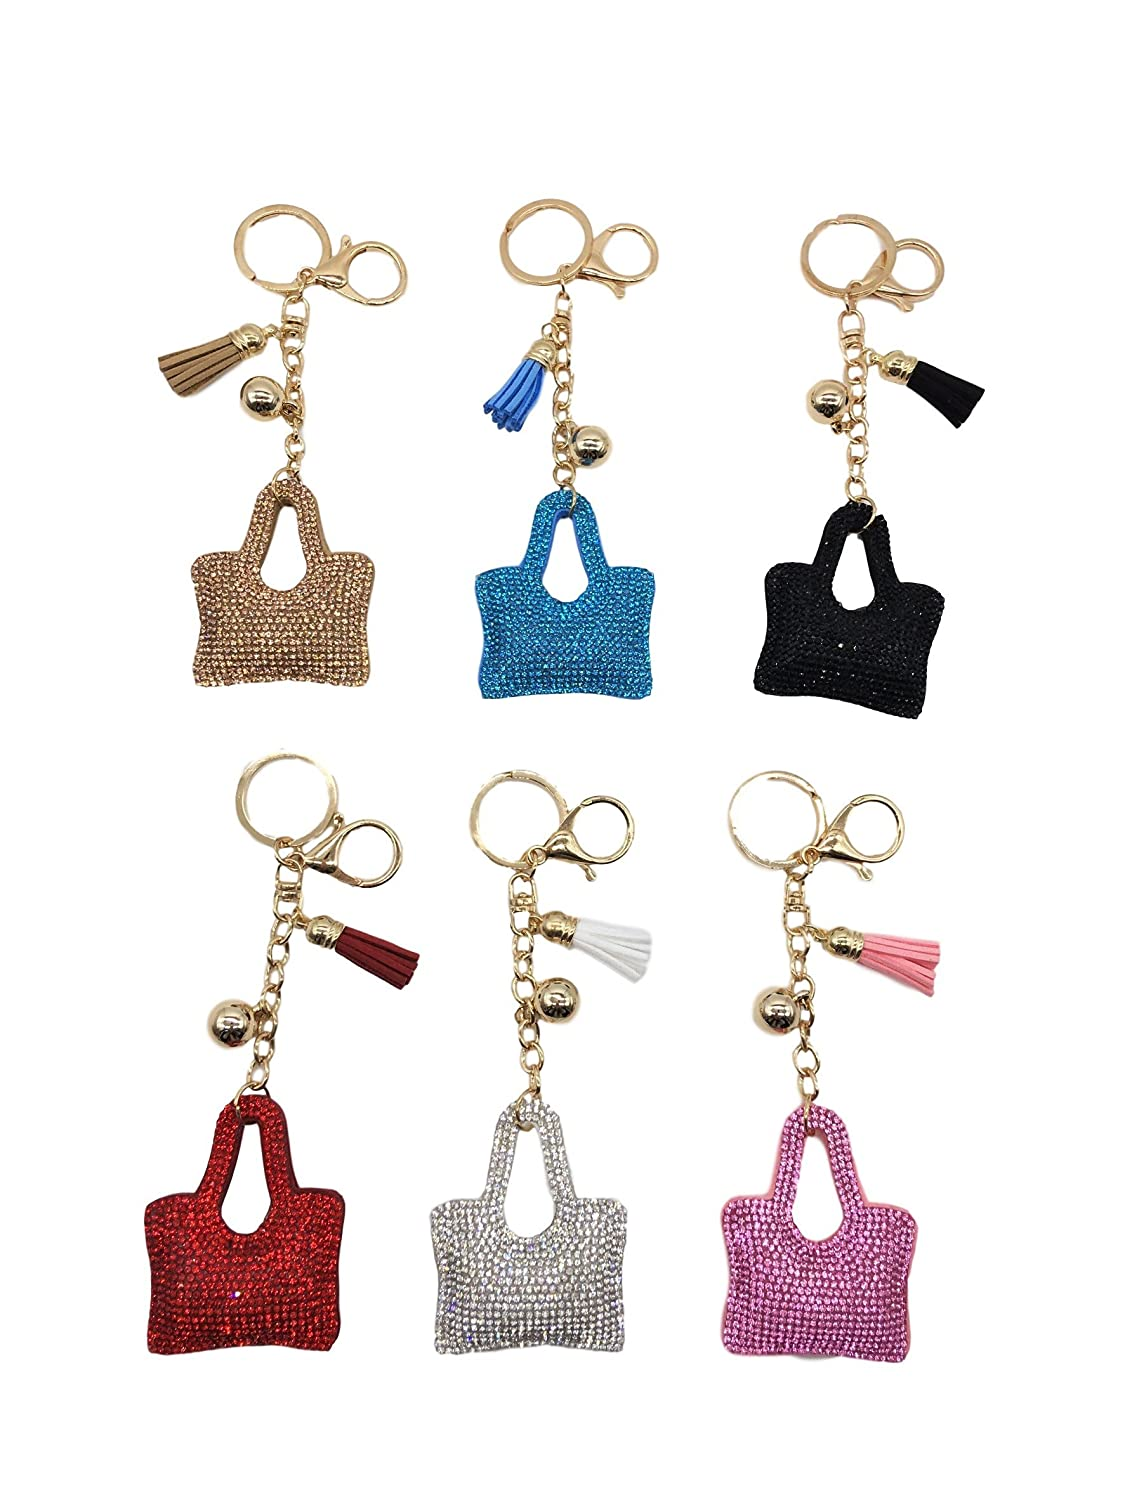 Kelly's Key Rhinestone Chain Pendant Bag Ring Crystal Charm Purse Keyring Keychain Gift Car Cute Handbag (6 Pack )